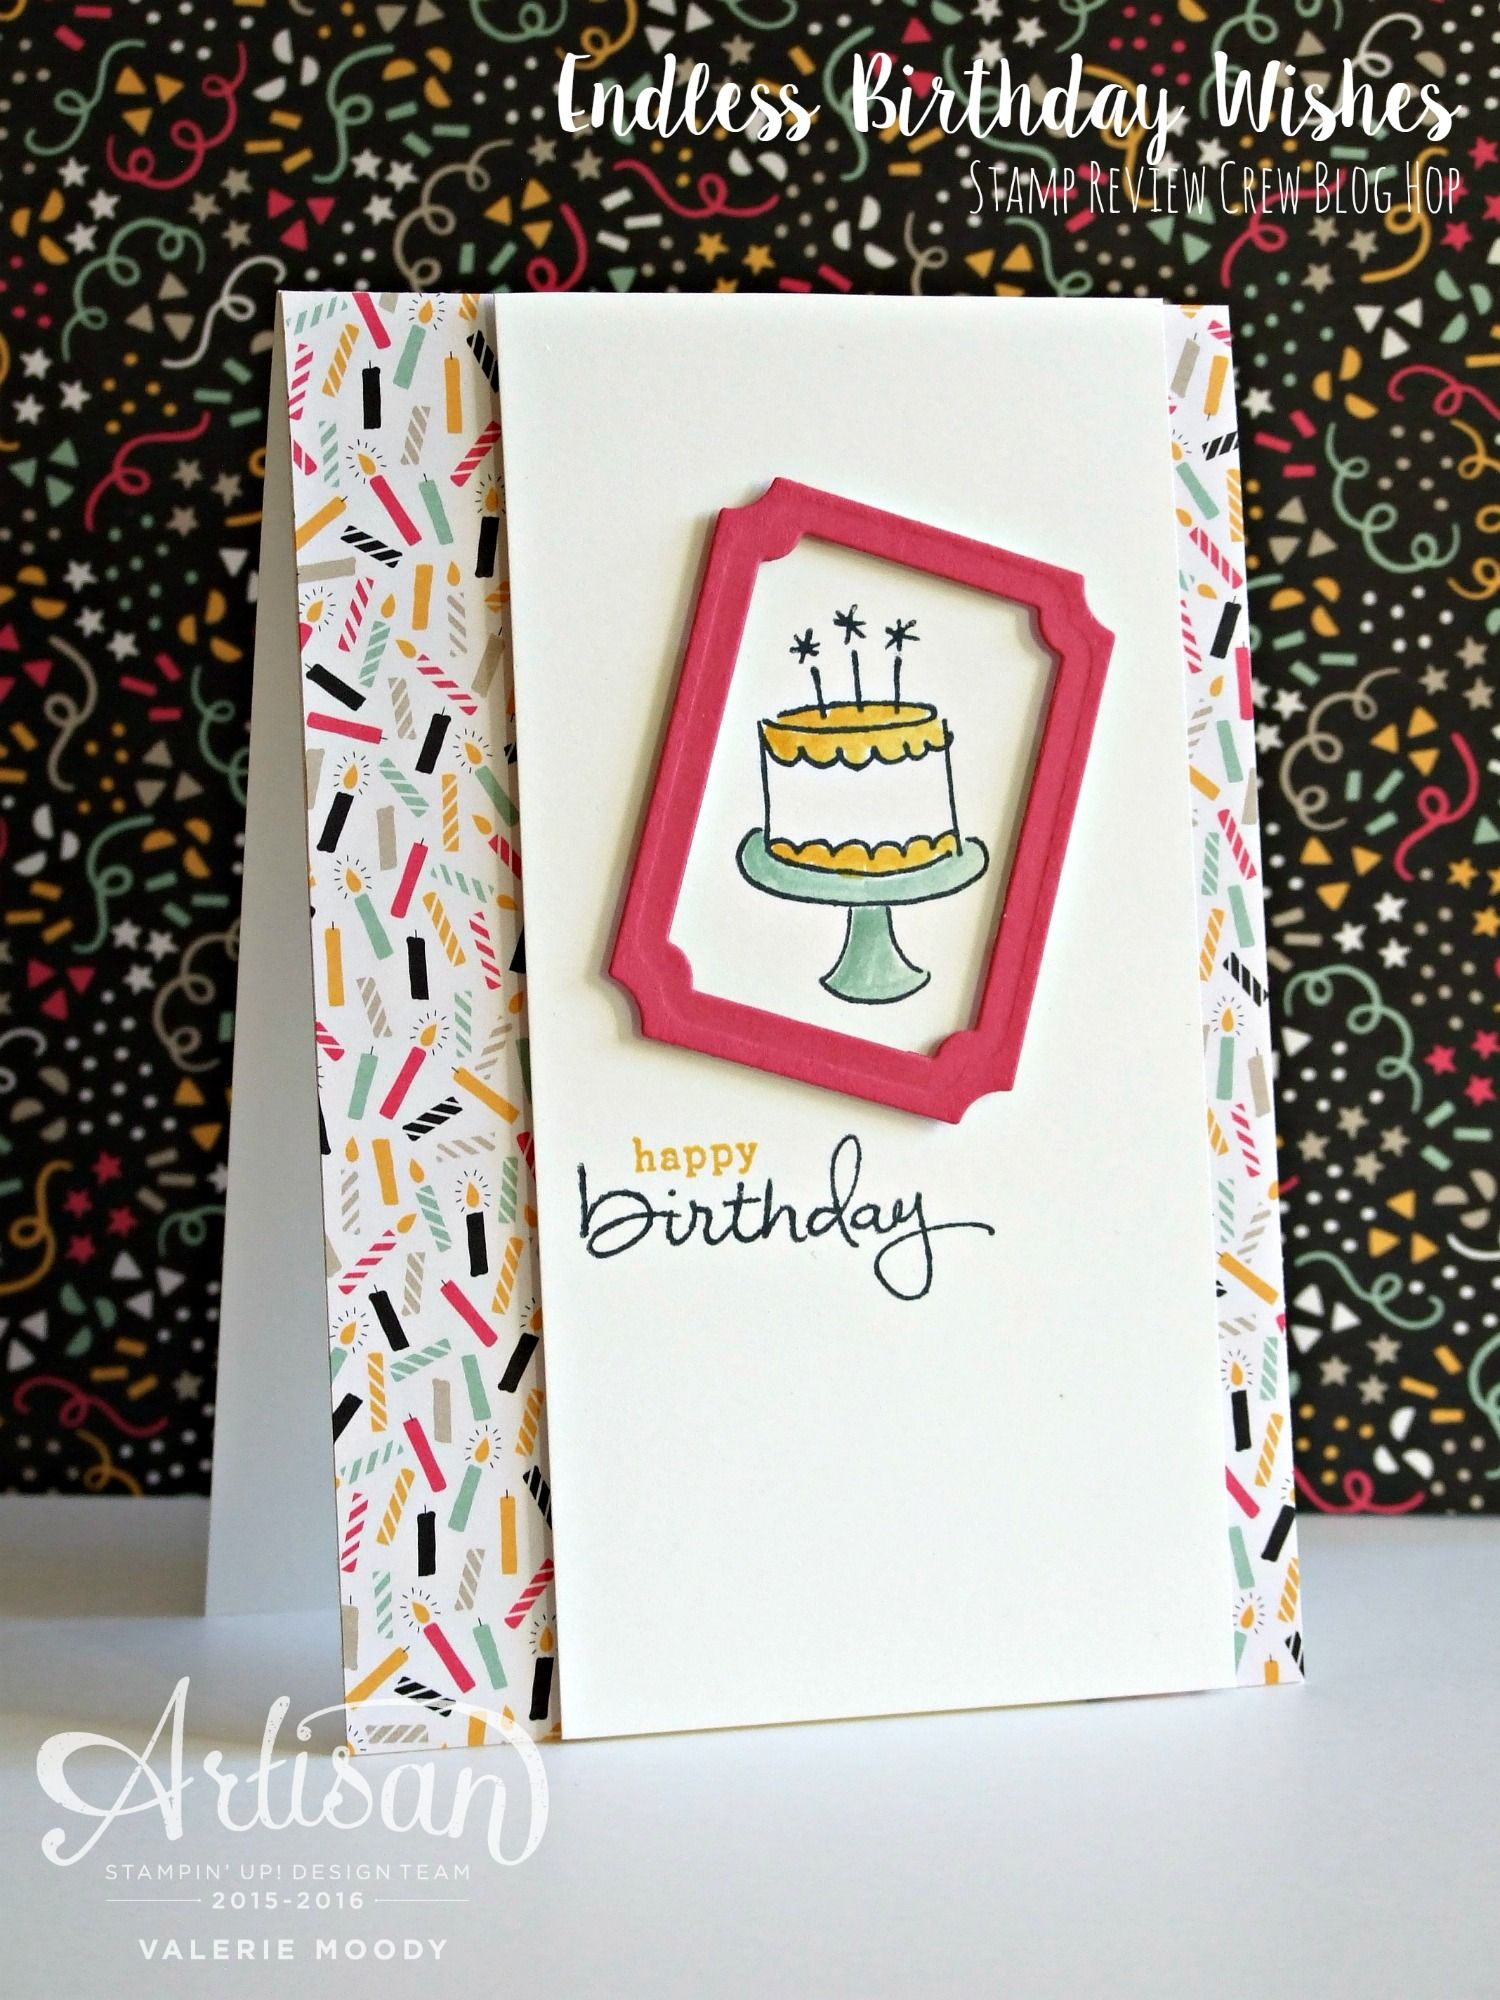 Endless Birthday Wishes For The Stamp Review Crew Blog Hop